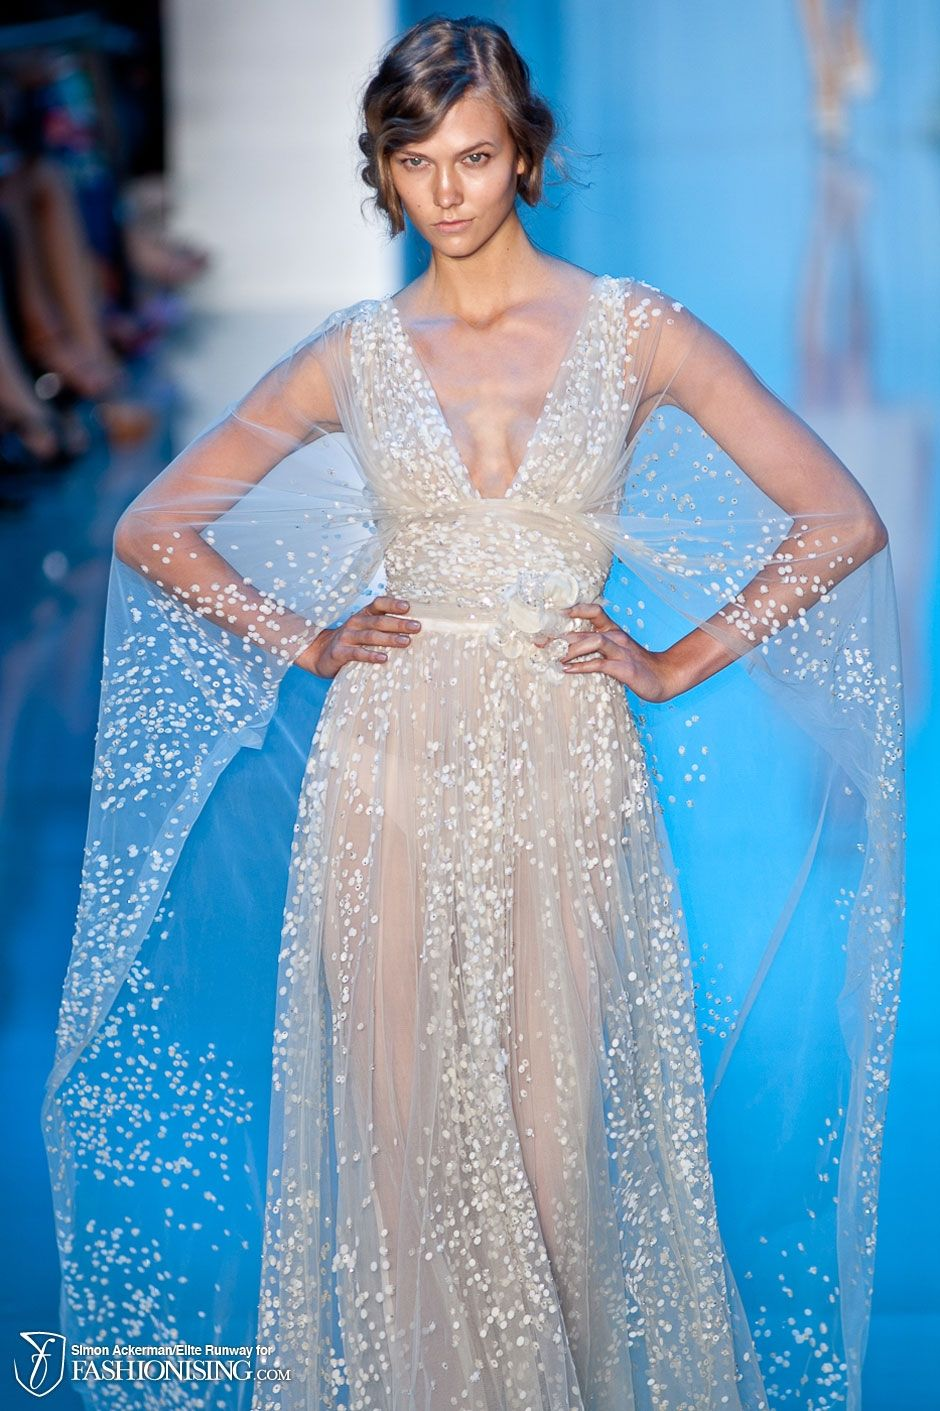 Elie saab glam pinterest winter cape david meister and ice queen